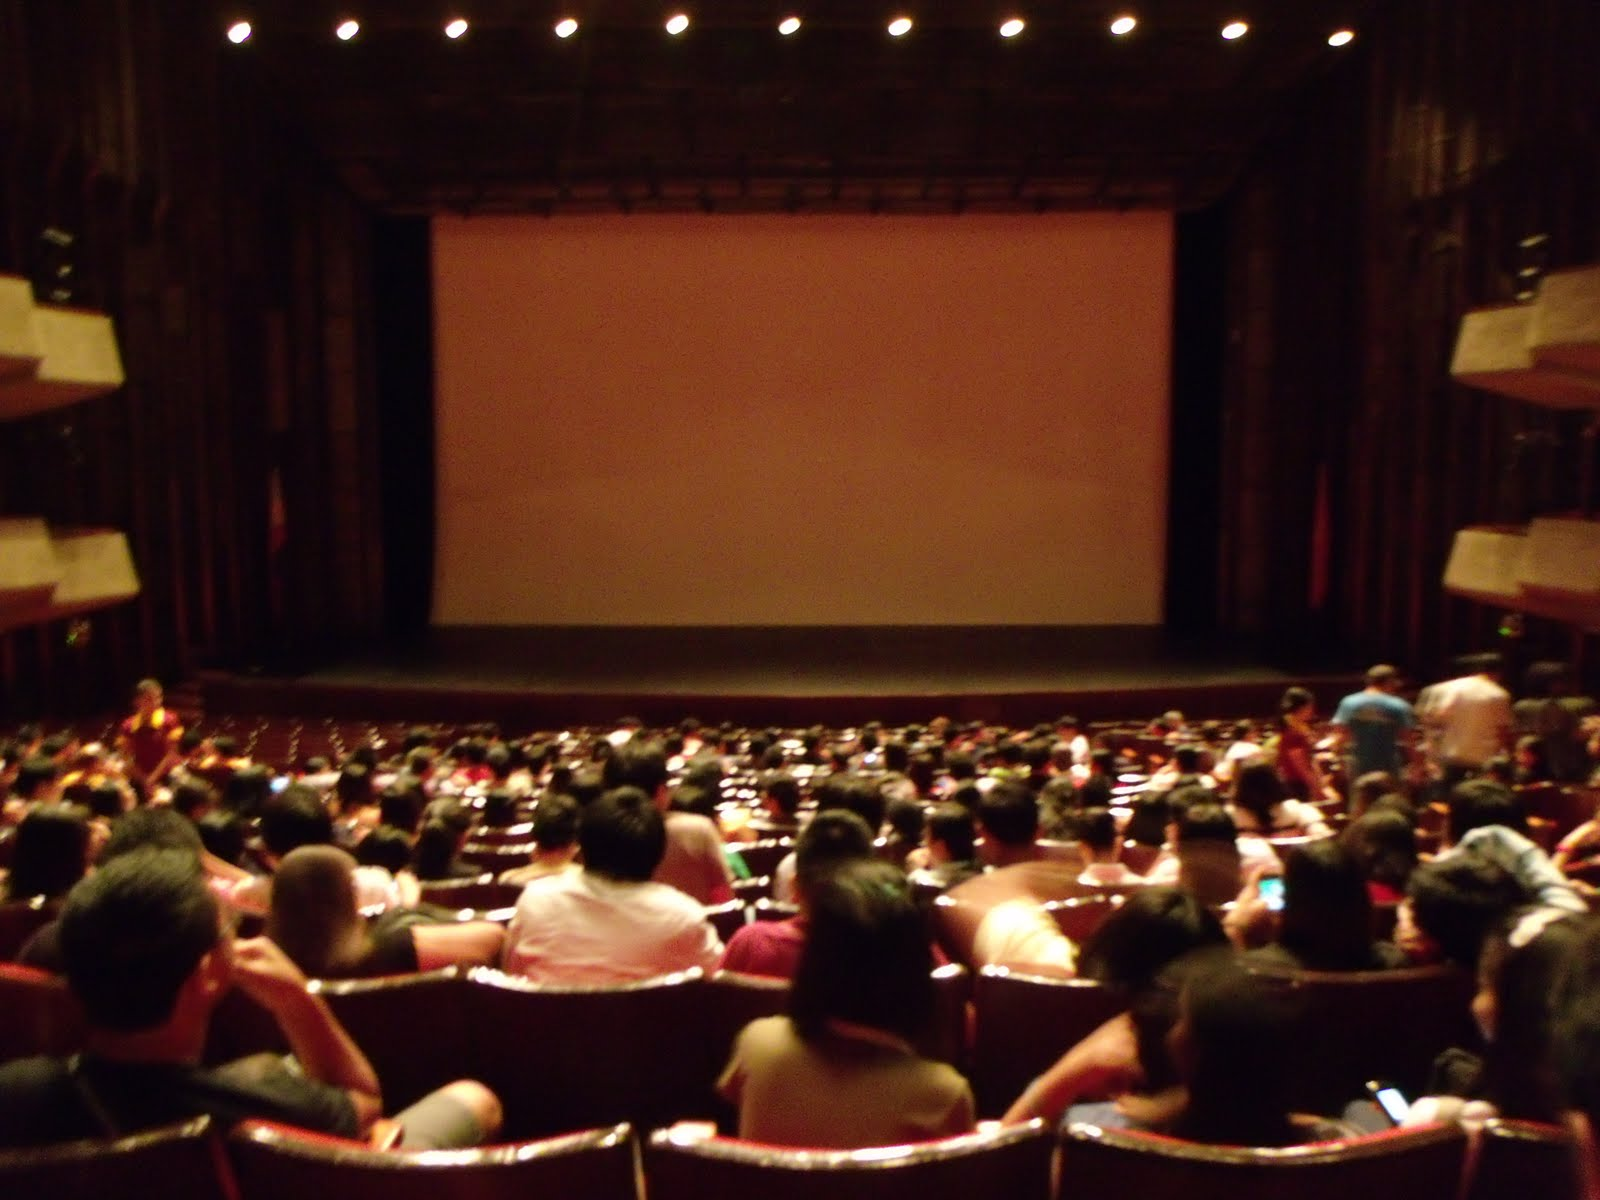 descriptive essay movie theater Descriptive essay essaysmy neighborhood is historical, diverse, fun and very large i have lived here in shirley since july of 1987, i would turn 4 on september 23 of that year, about 14 years ago my neighborhood is composed of the towns of shirley, mastic and mastic beach.